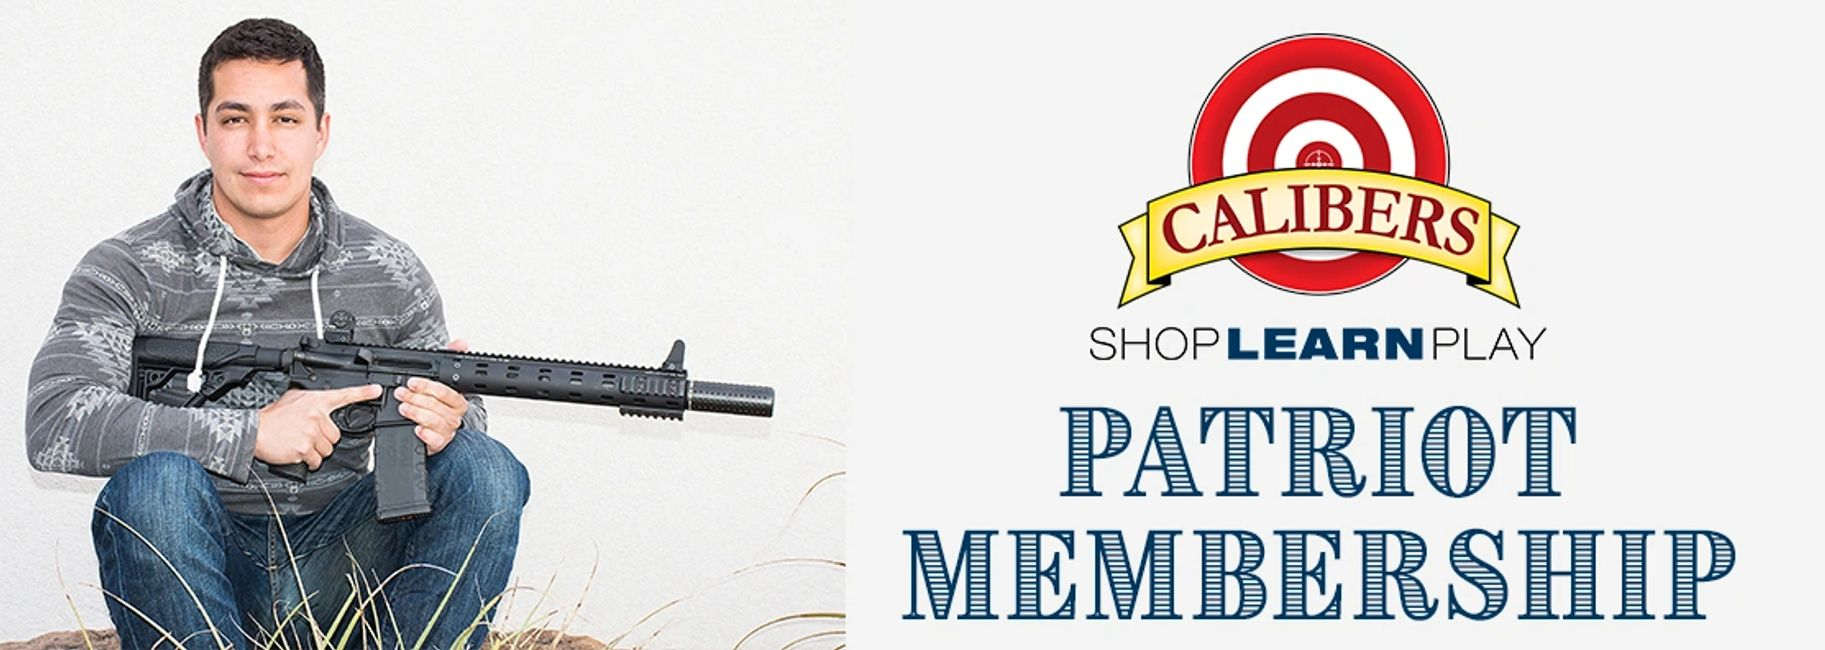 Calibers Patriot Membership is for active and retired law enforcement